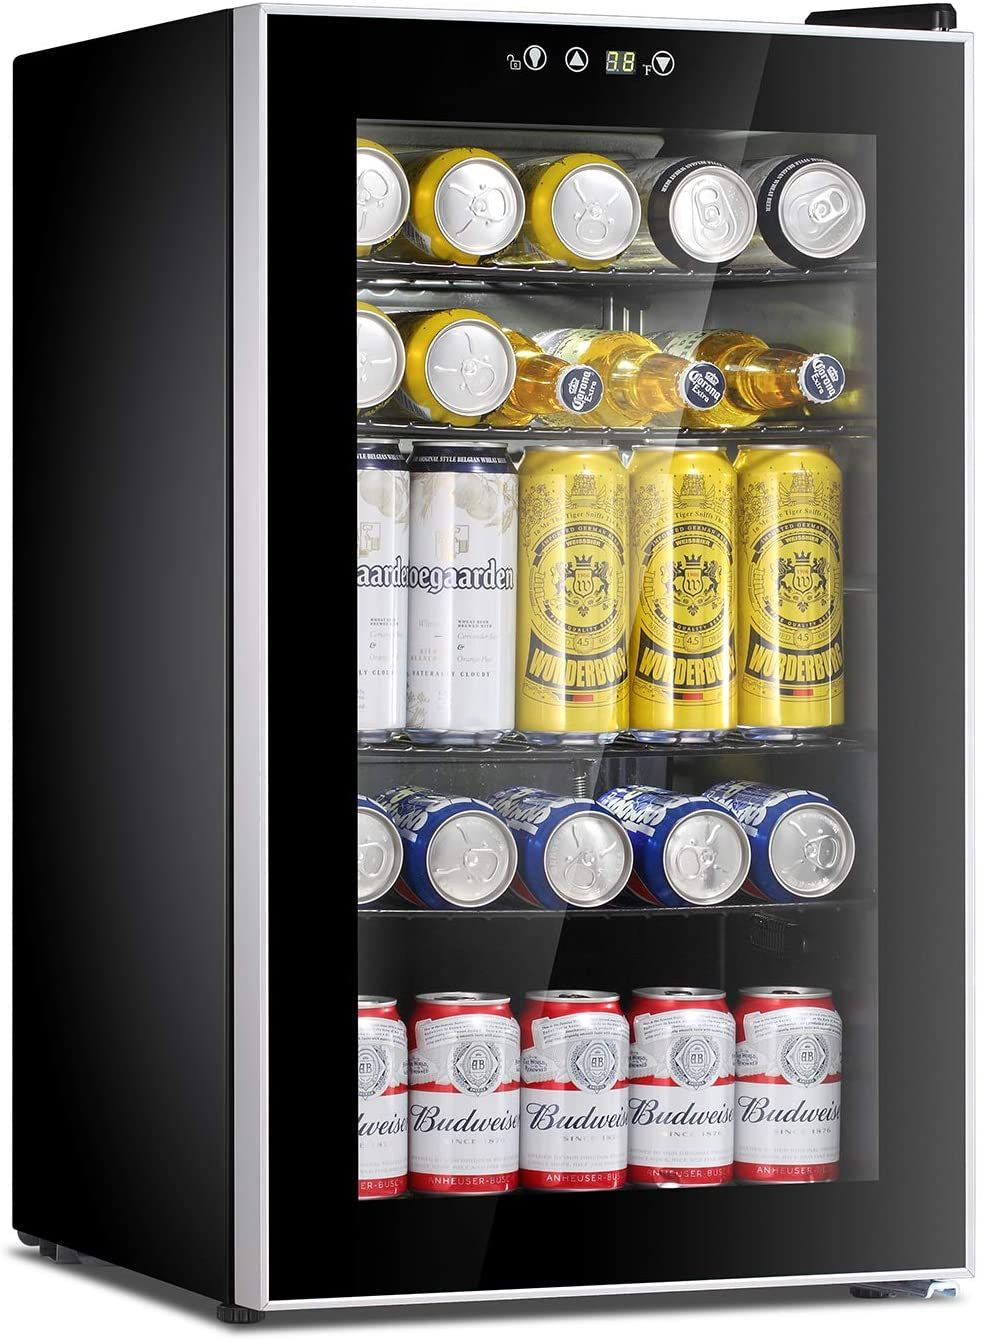 Antarctic Star Beverage Refrigerator Cooler 85 Can Mini Fridge Glass Door For Soda Beer Wine Stainle In 2020 Refrigerator Cooler Beverage Refrigerator Mini Fridge